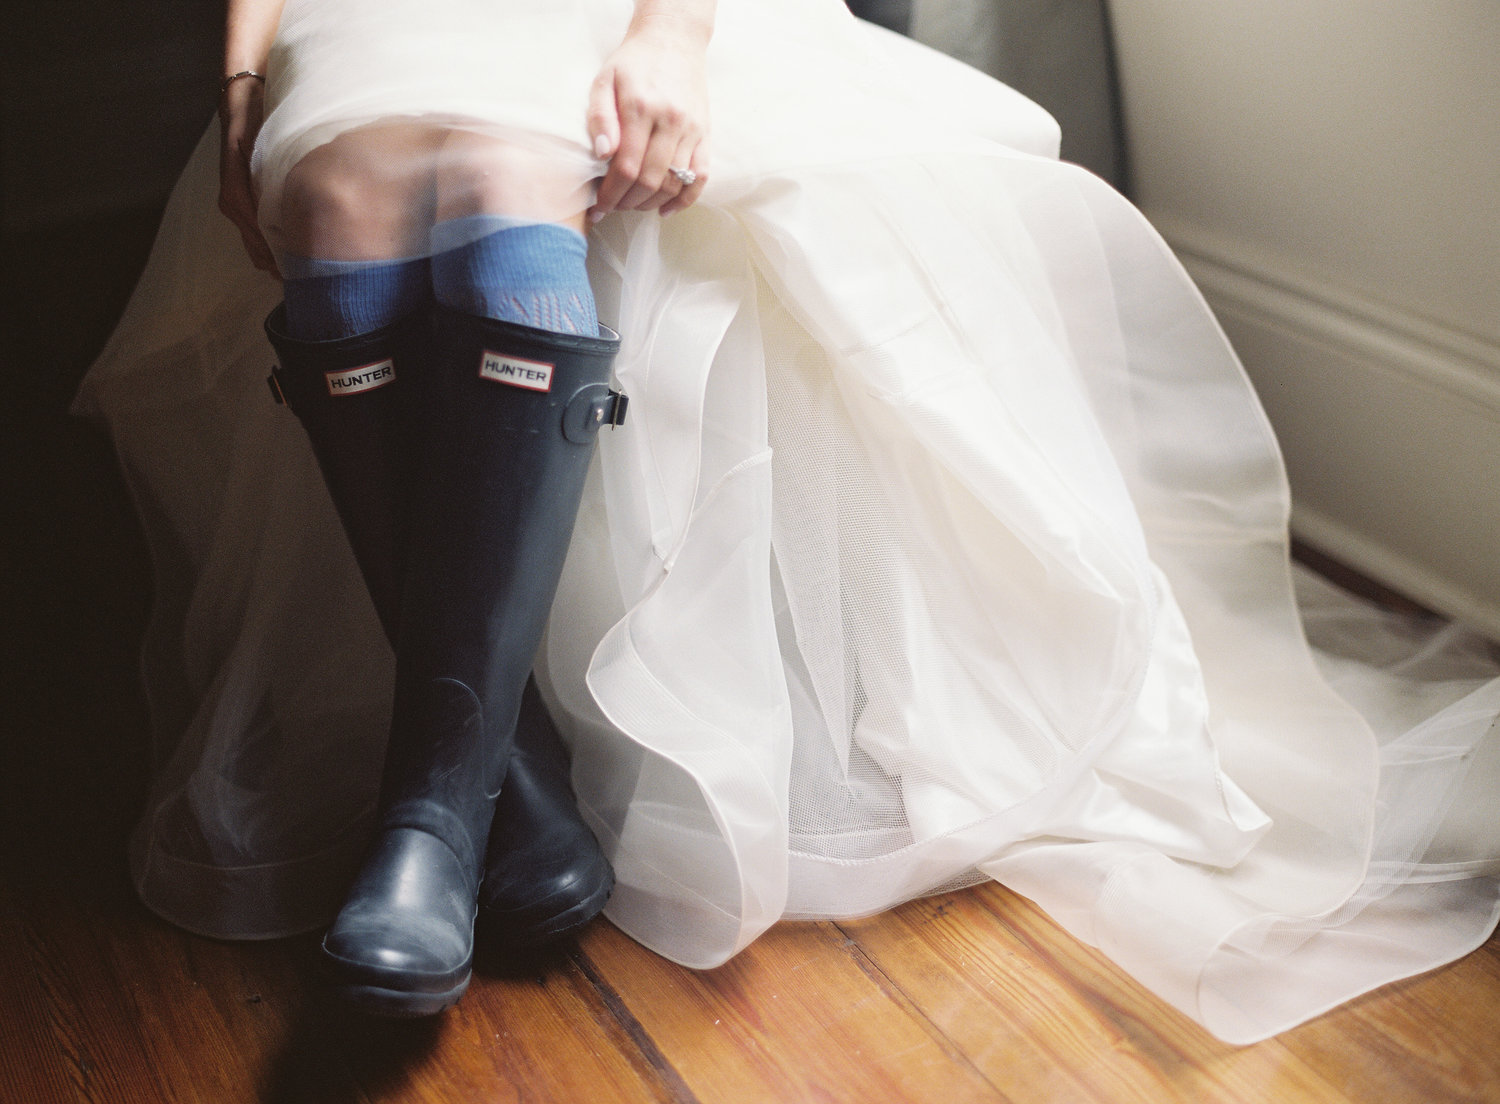 Bride in her wedding dress showing her black hunter rain boots under the dress